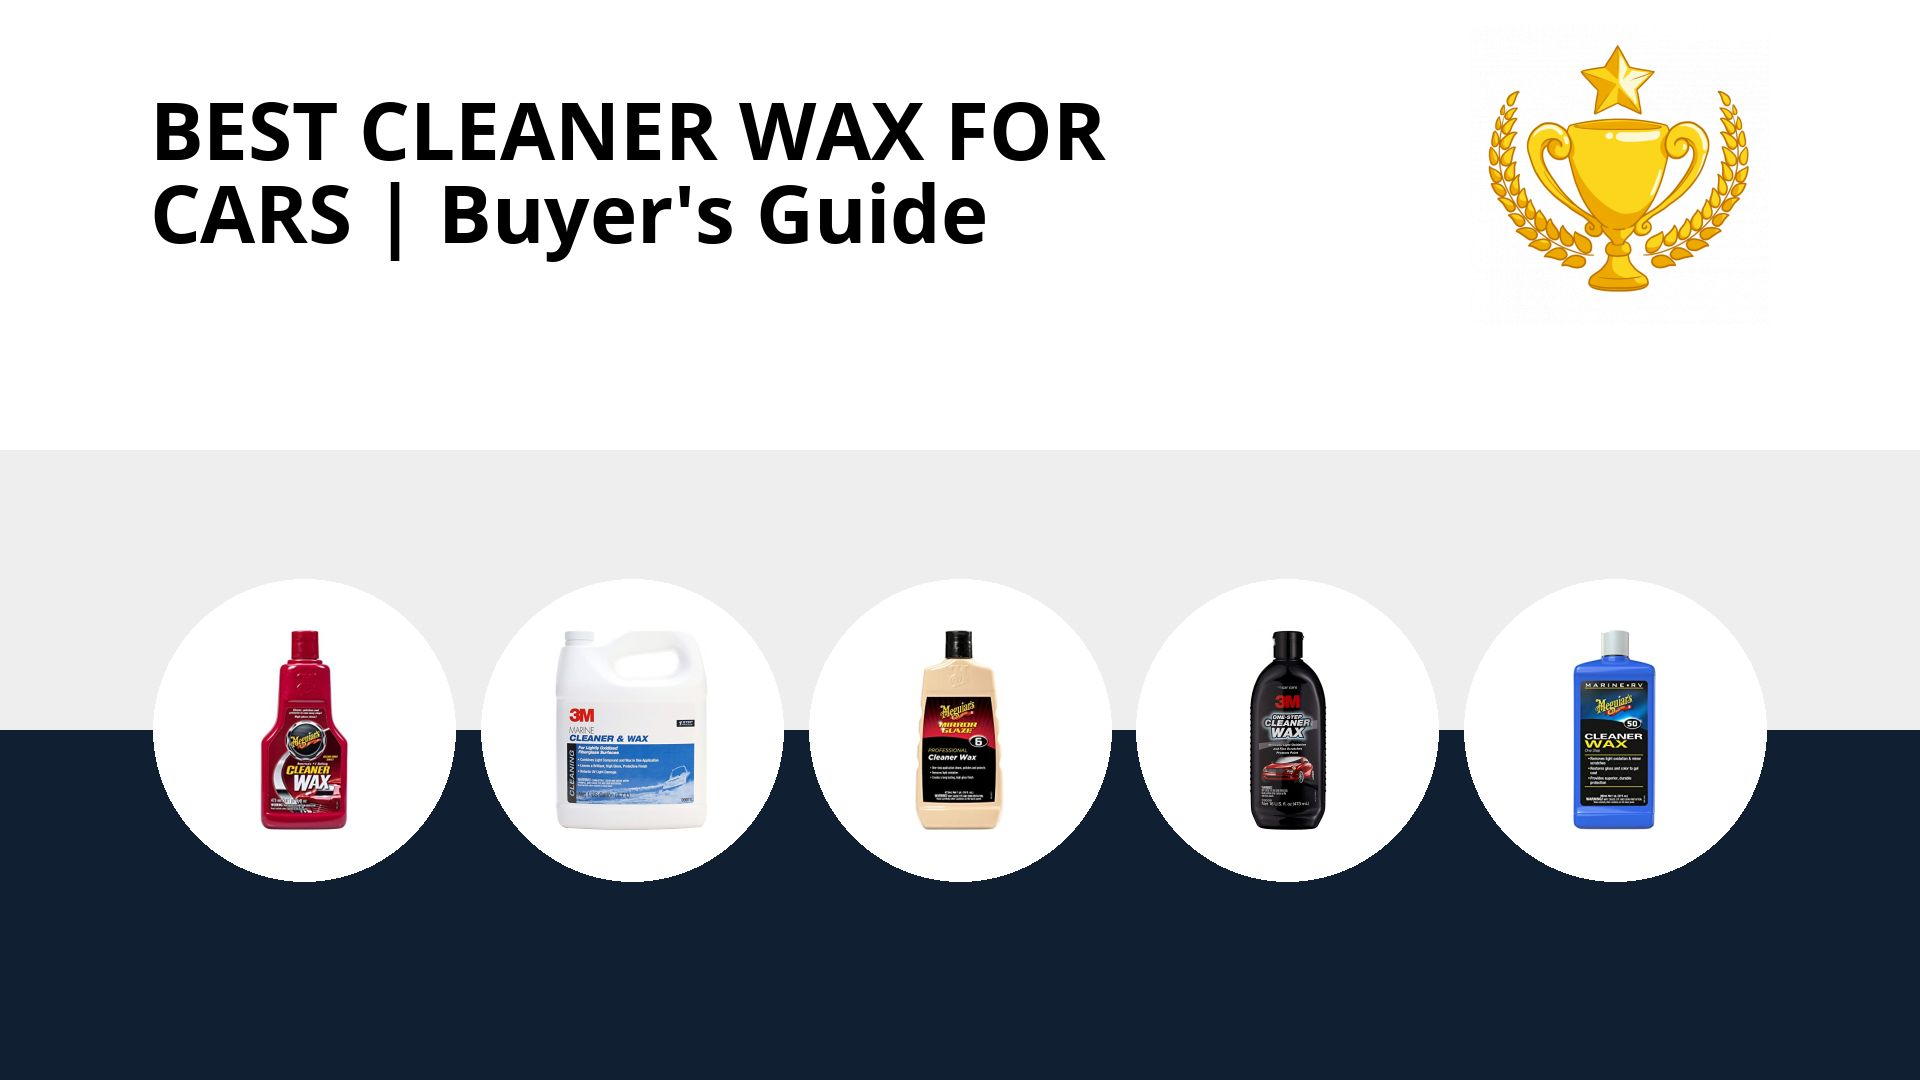 Best Cleaner Wax For Cars: image